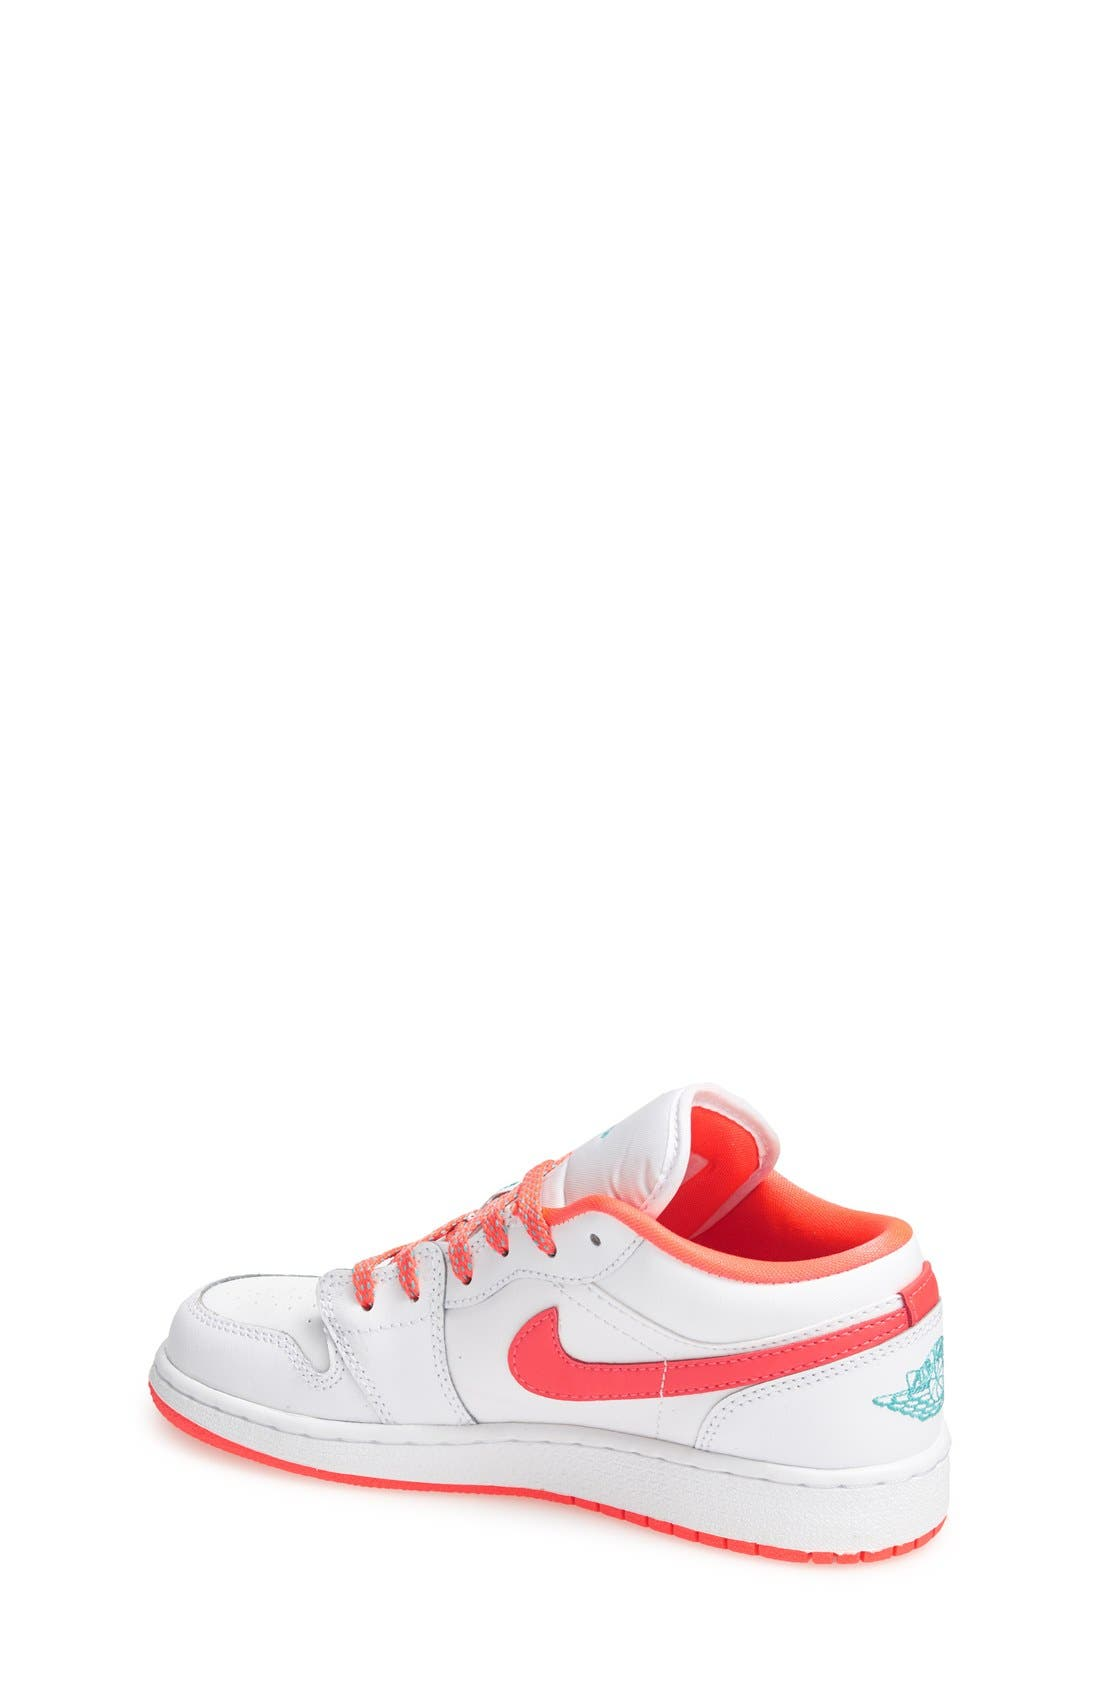 Nike 'Jordan 1 Low' Basketball Shoe,                             Alternate thumbnail 6, color,